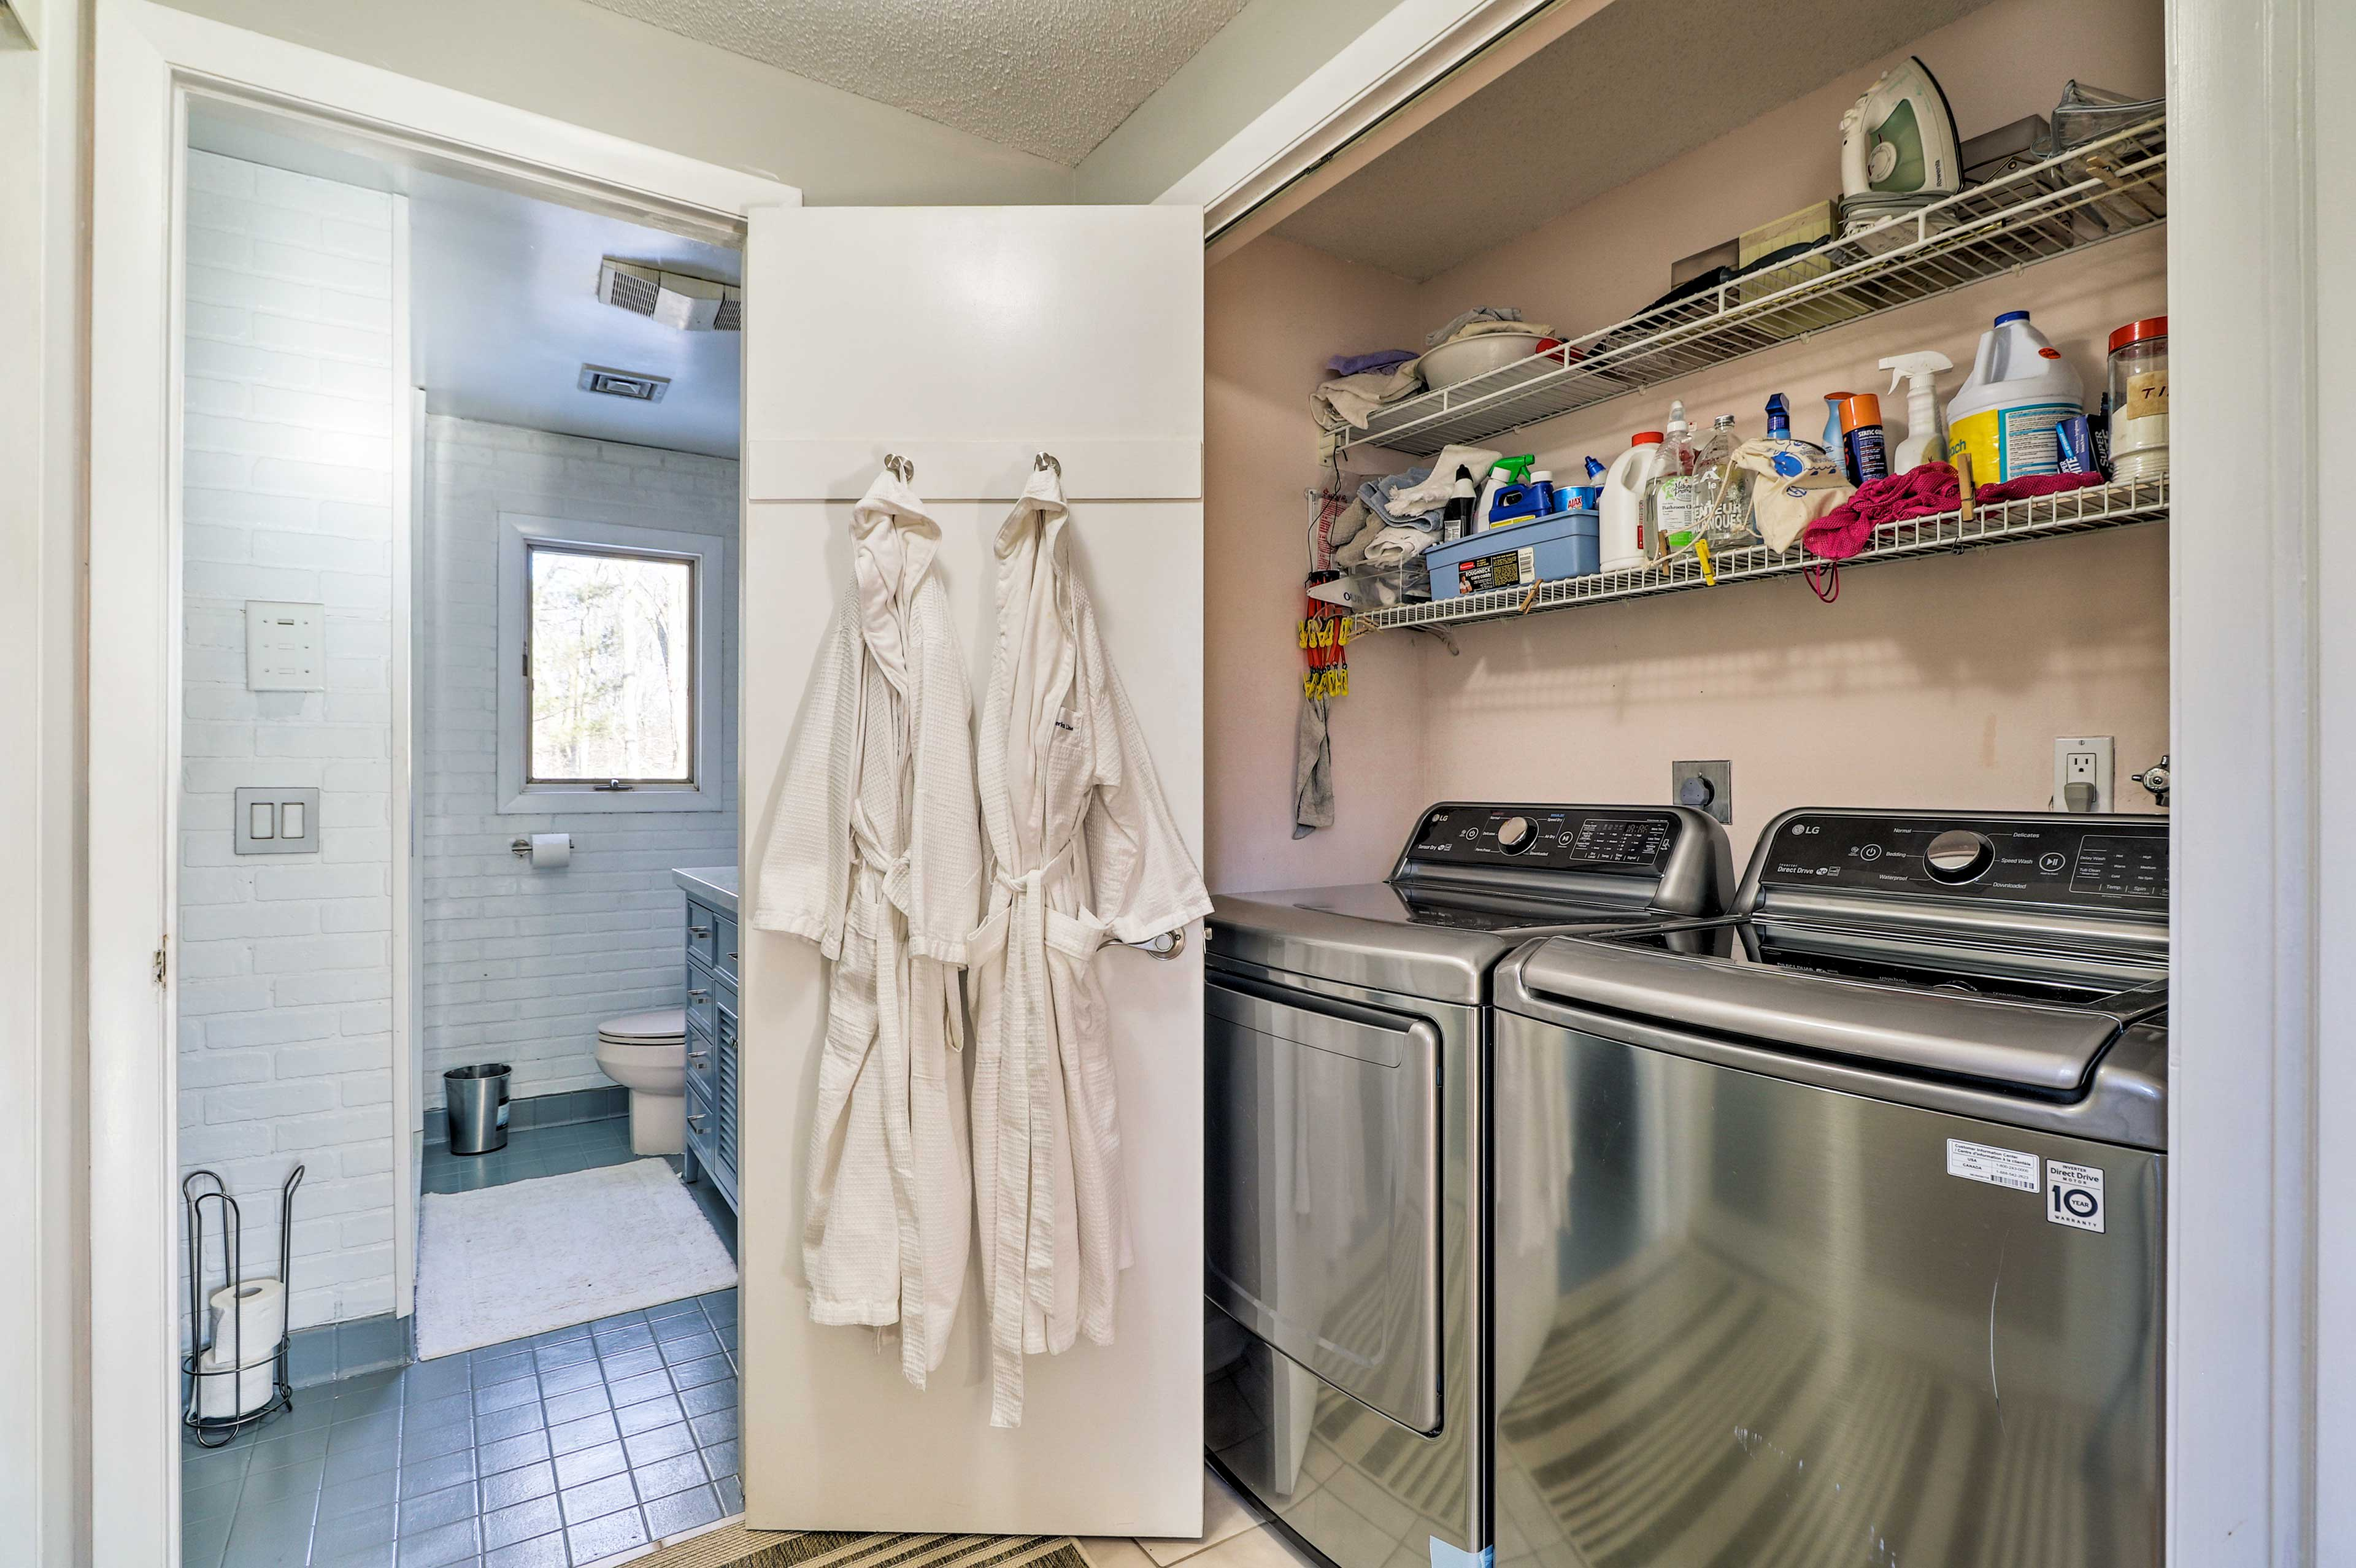 At-home laundry adds an extra homey touch!